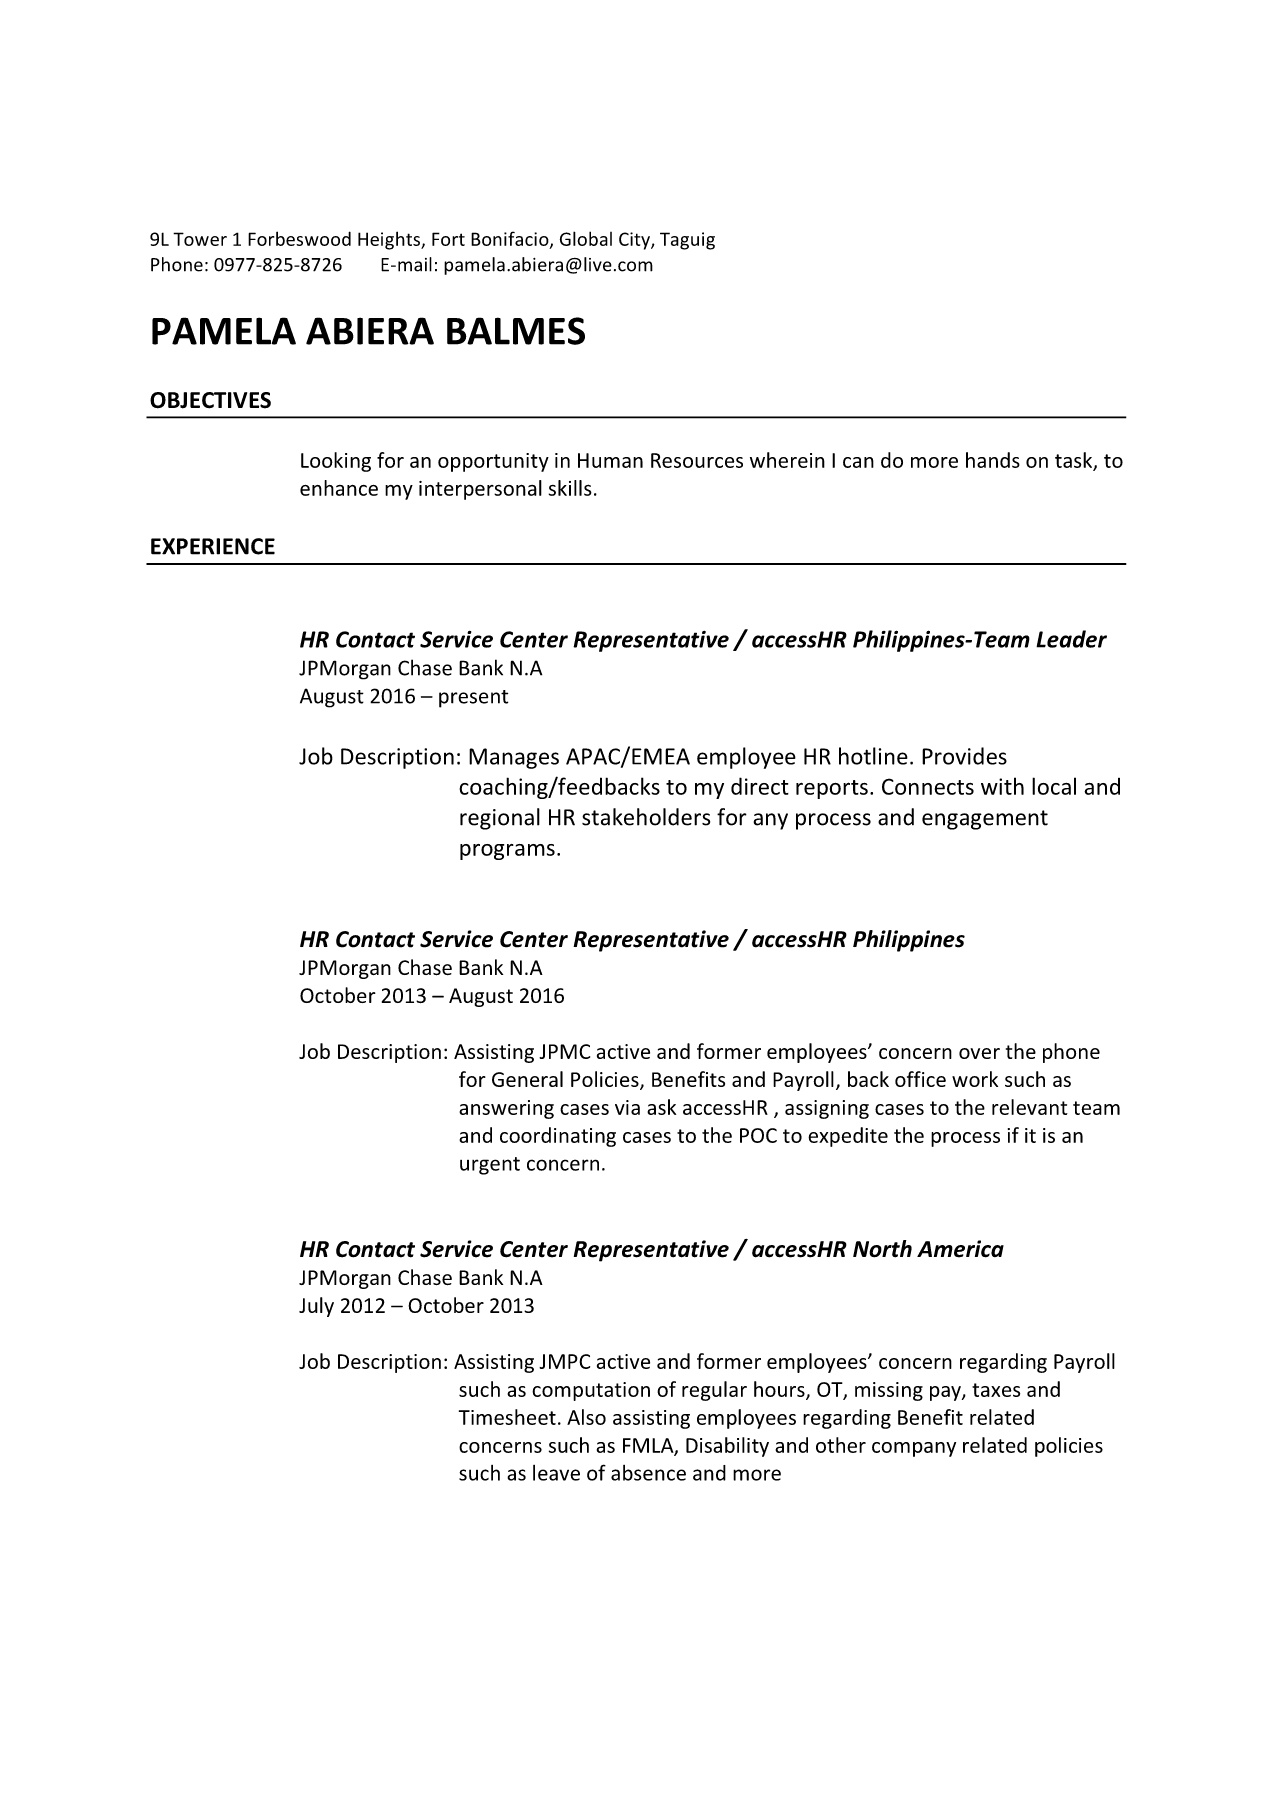 Cover letter and resume BALMES, Pamela - Recruitment Post